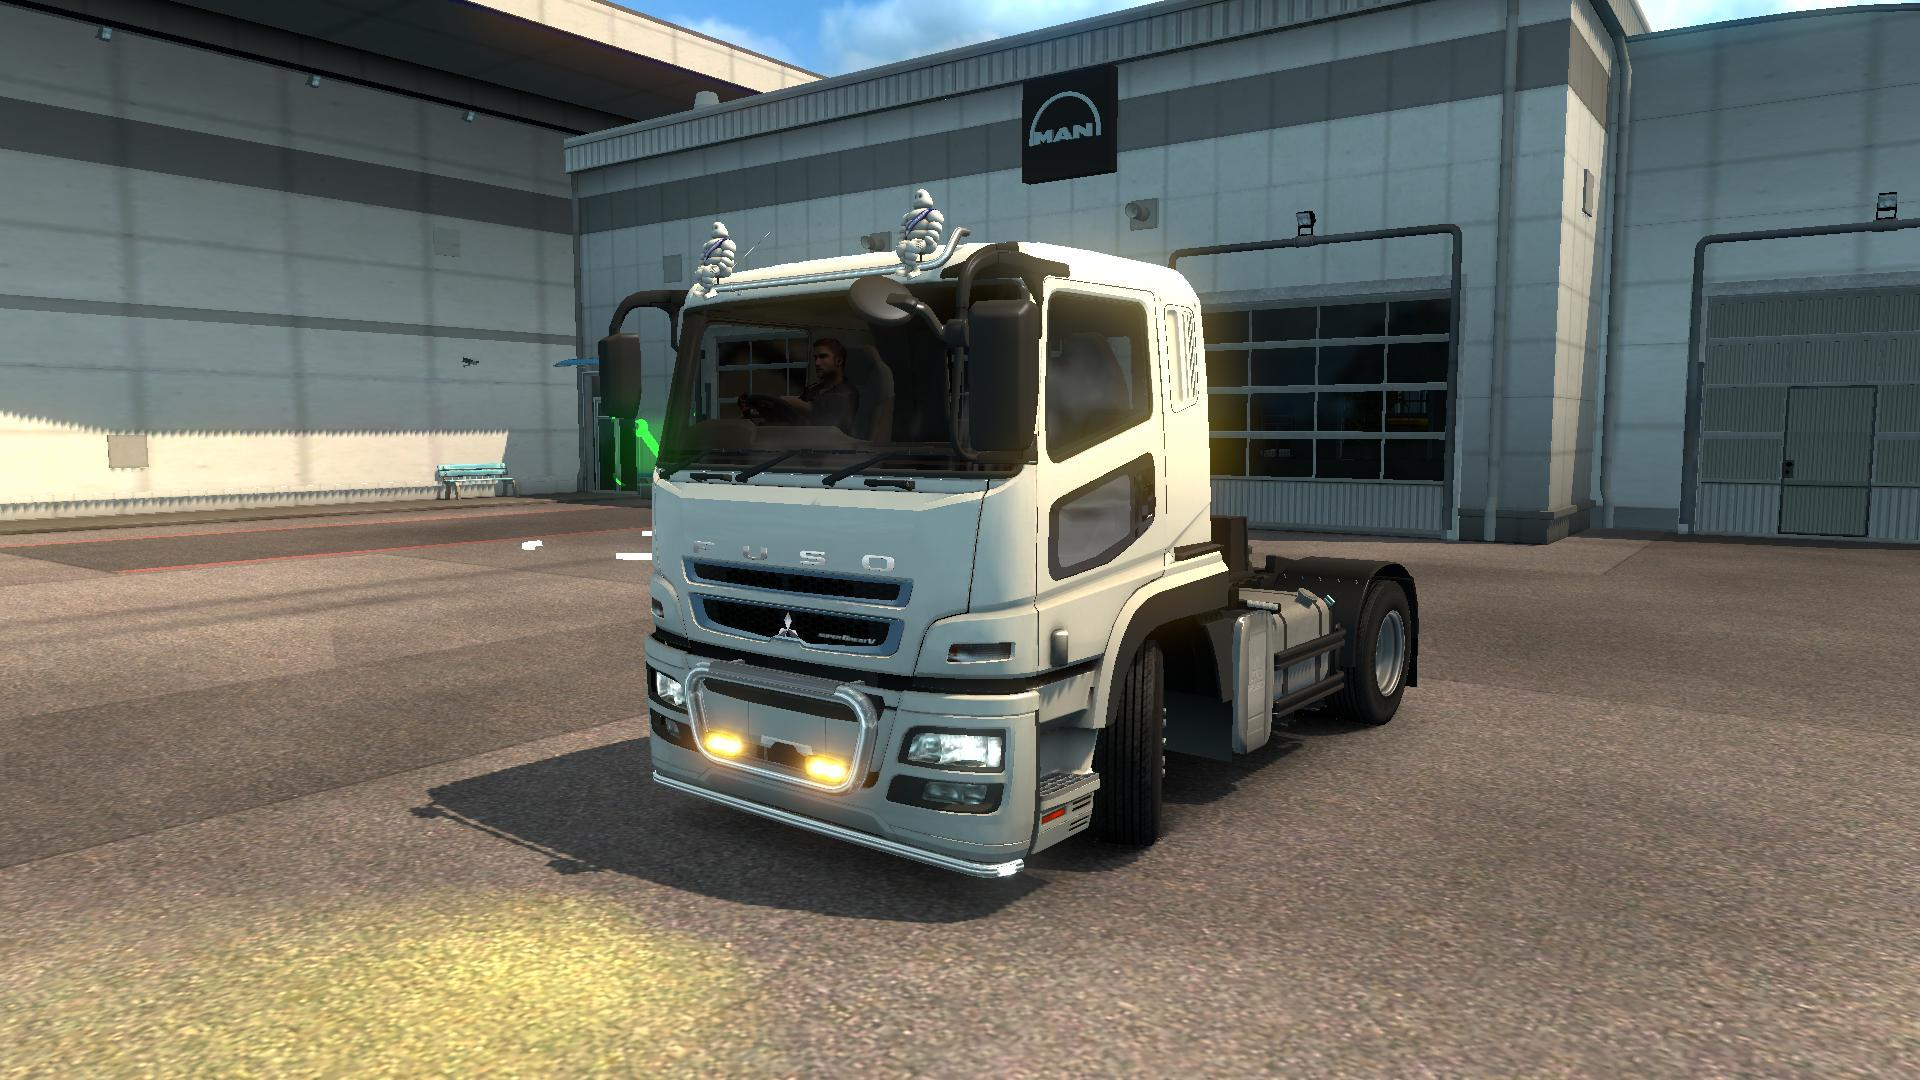 MITSUBISHI FUSO SUPER GREAT BETA 1 3 TRUCK MOD -Euro Truck Simulator